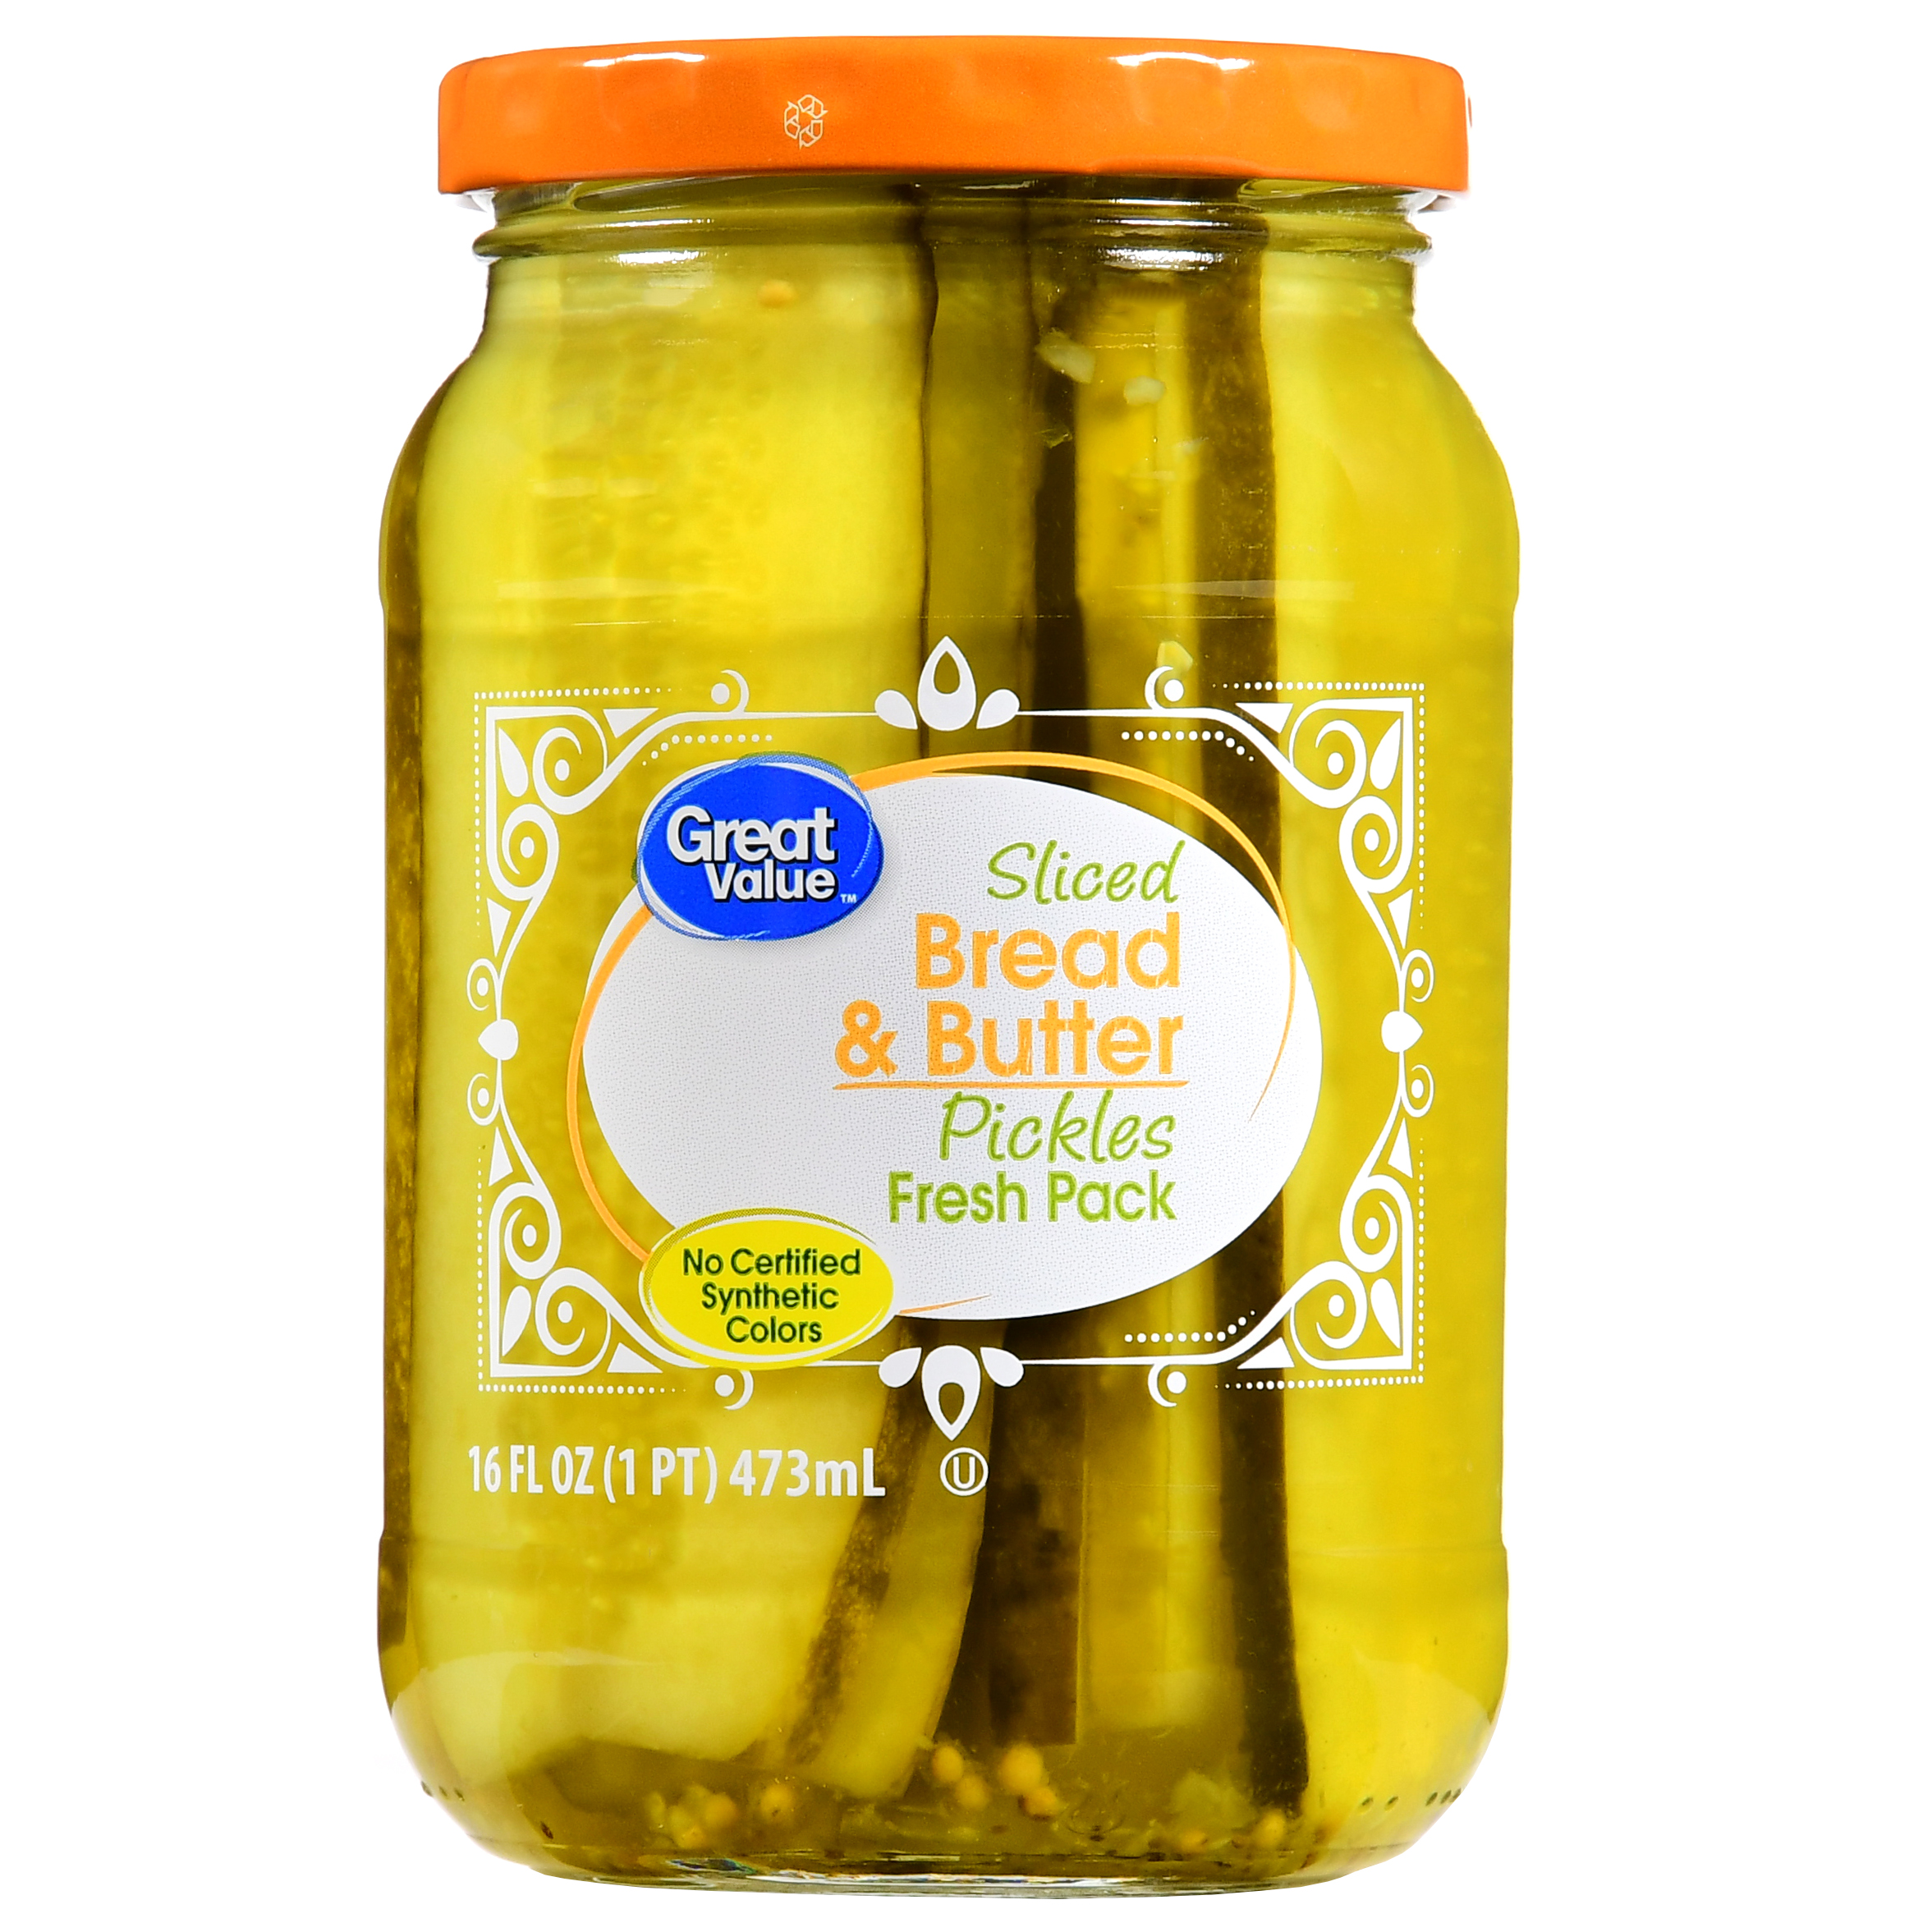 Great Value Sliced Bread & Butter Pickles Fresh Pack, 16 fl oz